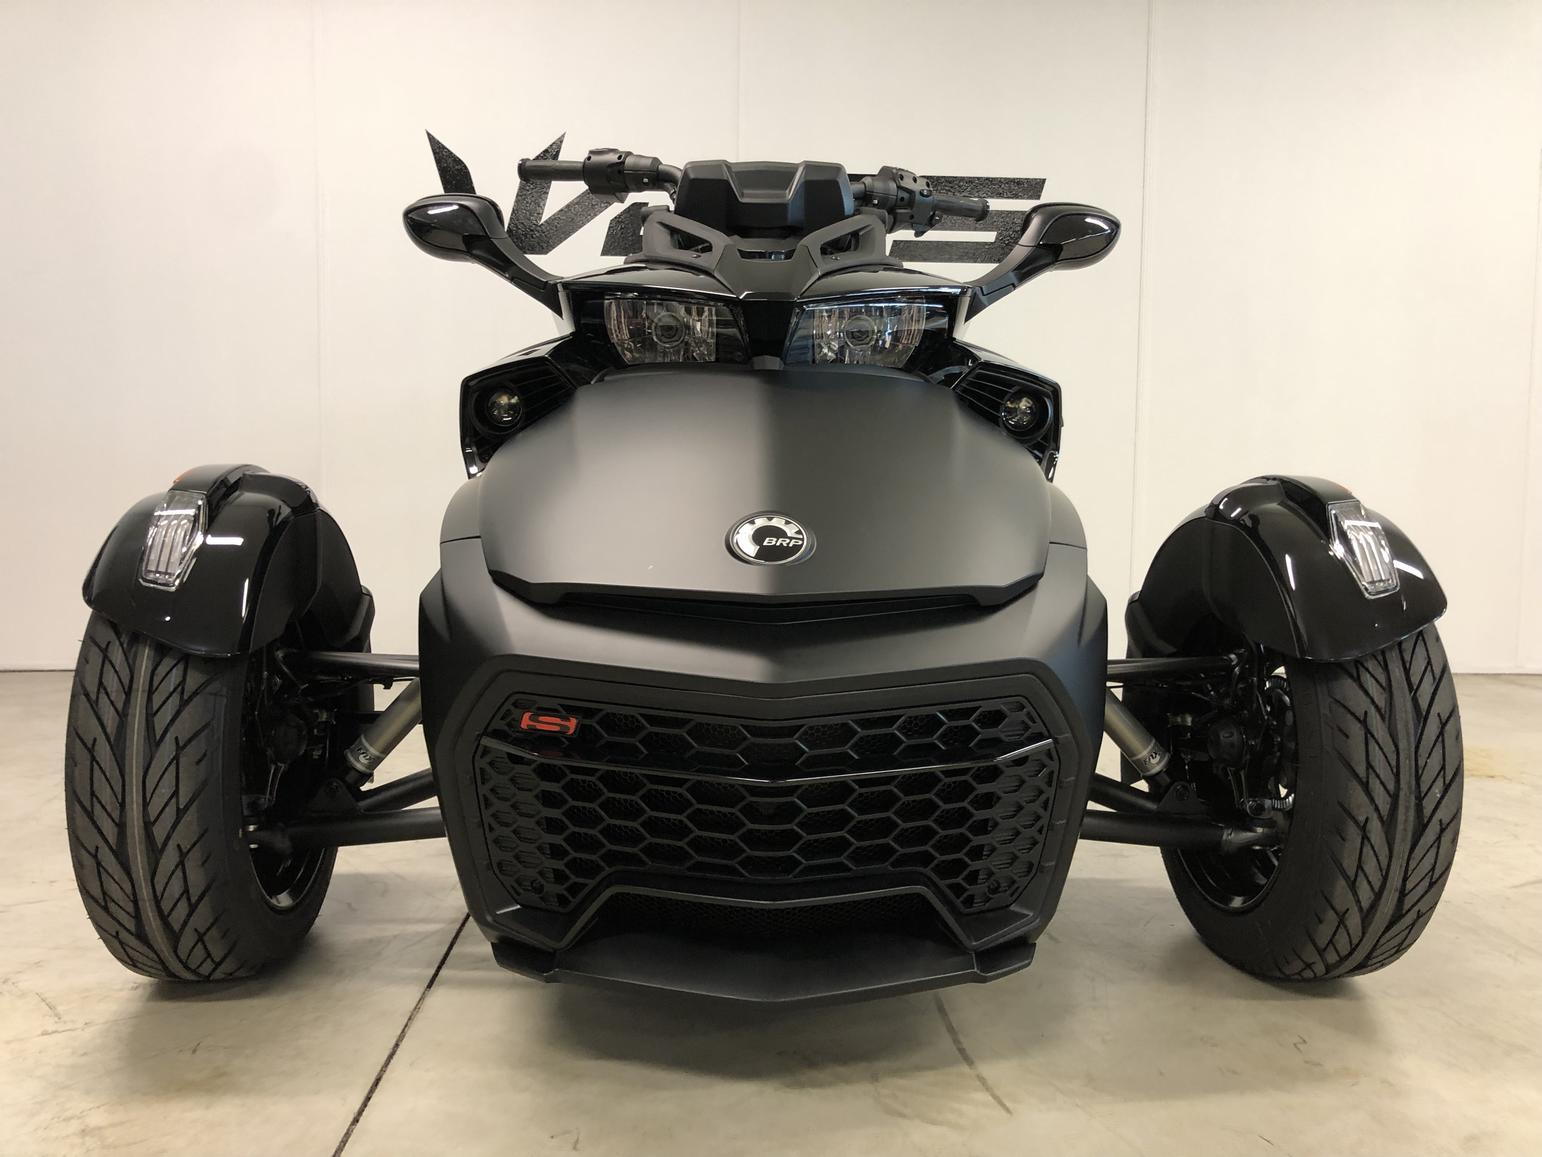 CAN-AM - SPYDER F3-S SE6